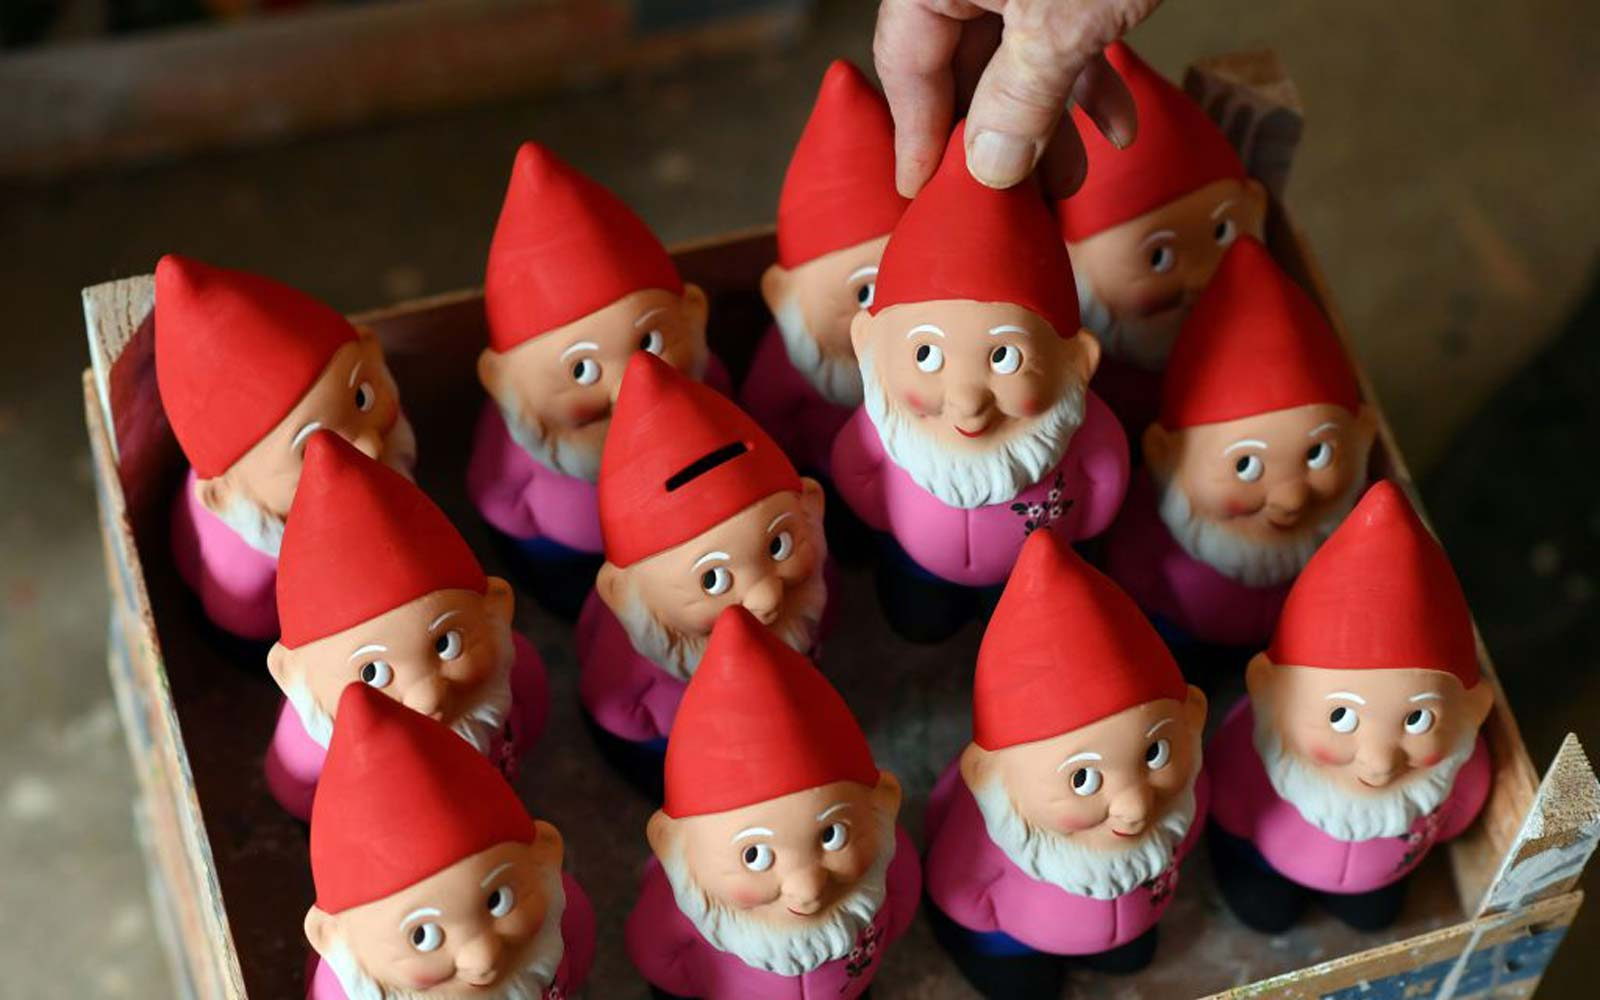 Garden gnomes are pictured at the  Gartenzwergmanufaktur Philipp Griebel  garden gnome manufacturer in Graefenroda near Ilmenau, central Germany